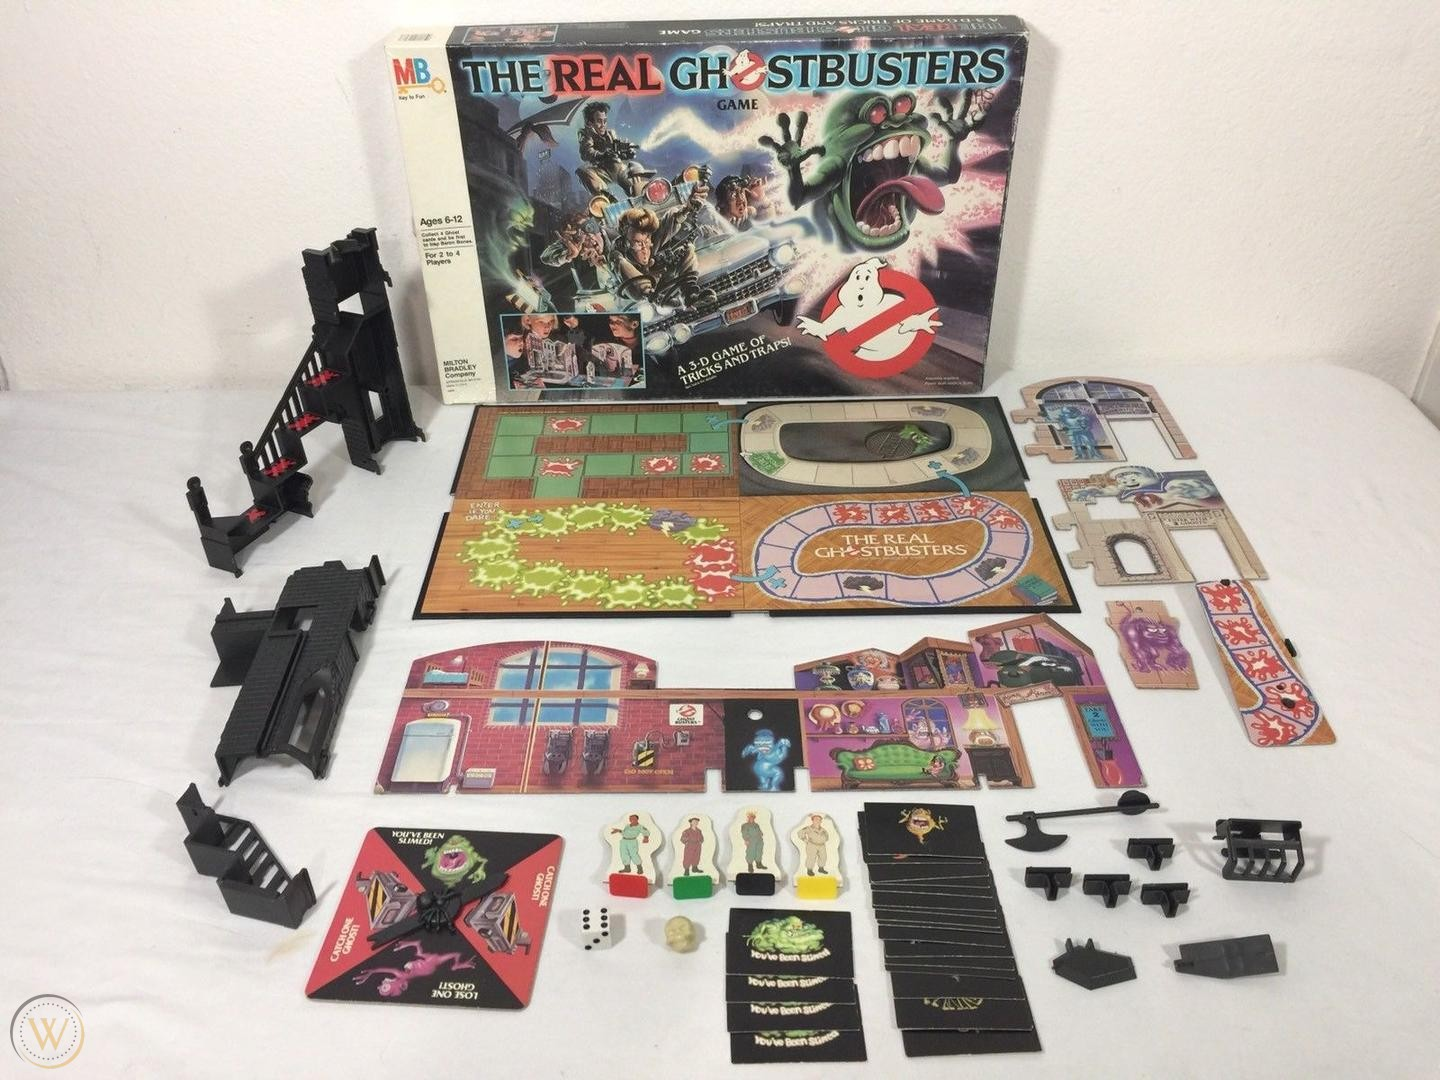 1984-real-ghostbusters-3d-board-game_1_a